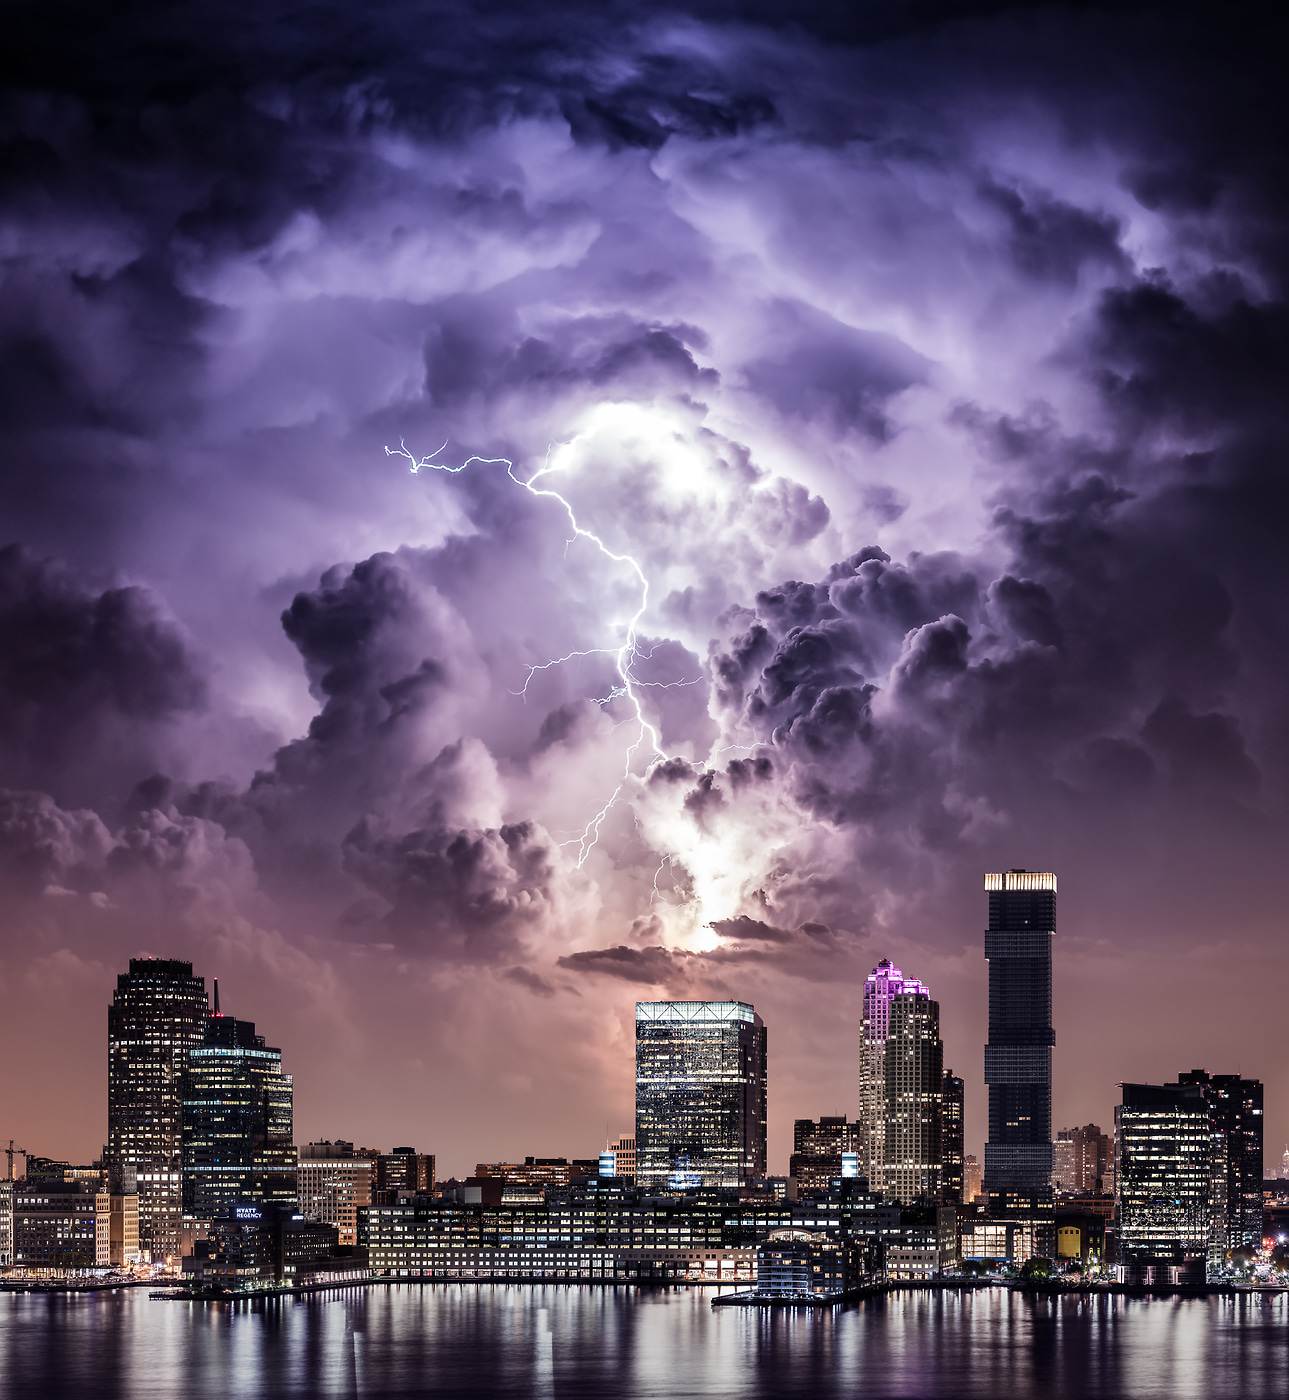 A very high resolution, large-format VAST photo print of a lightning bolt strike from a thunderstorm in Jersey City, NJ over URL Harborside 1; created by Dan Piech